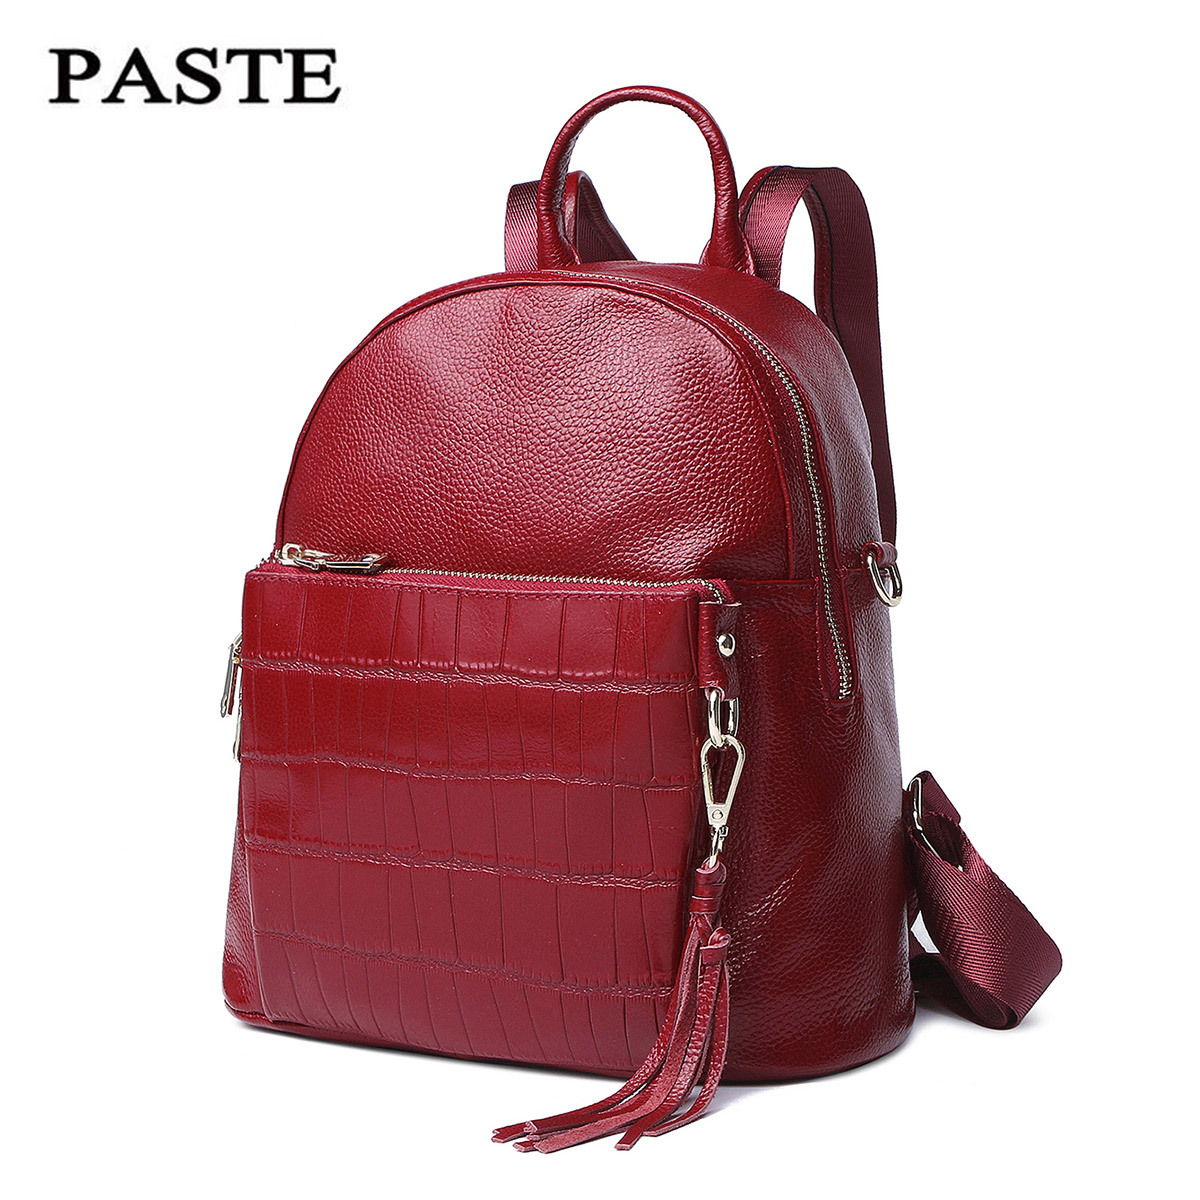 Genuine Leather Women Backpack Small Fashion Tassel Casual Girl Leather Backpack Brand Female Bags unicalling women leather backpack fashion quality genuine leather women backpack hieroglyphic real leather small backpack female